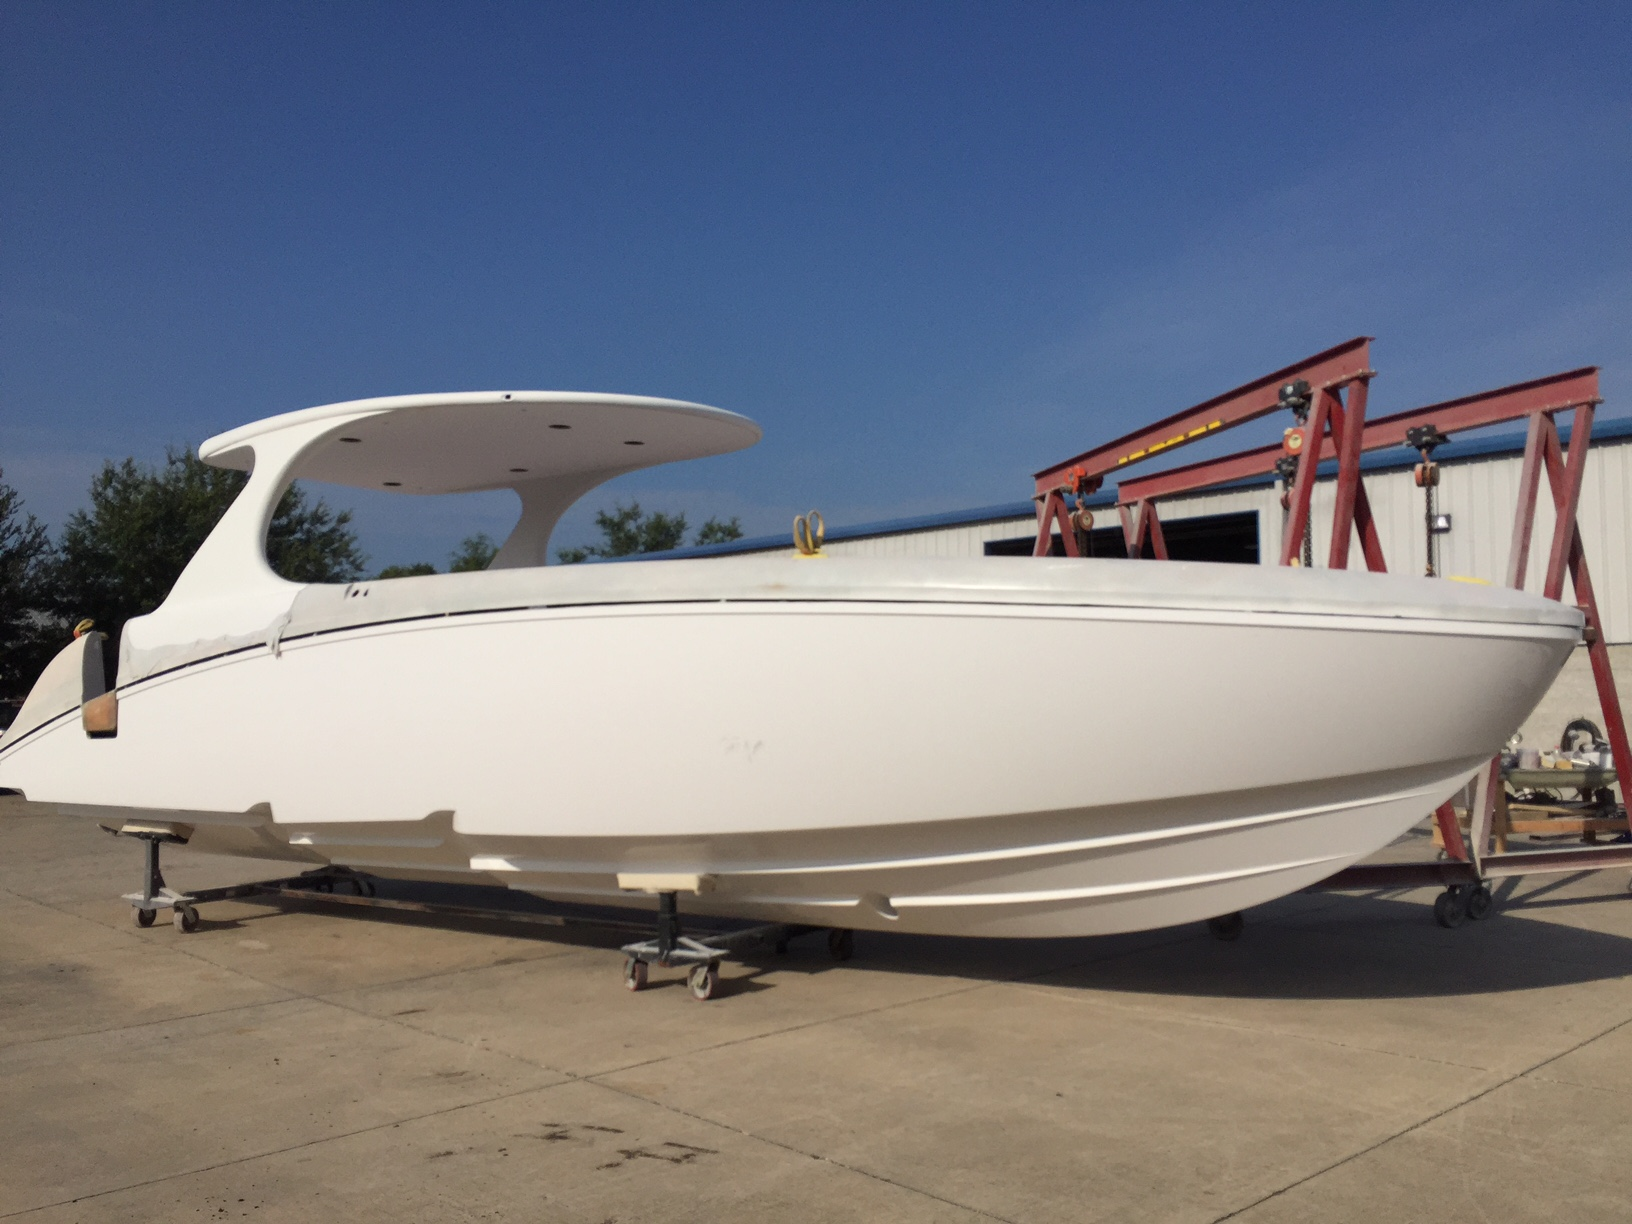 M4200 Hull No. 15. To date, 25 of Mystic's 42-footers have been sold.